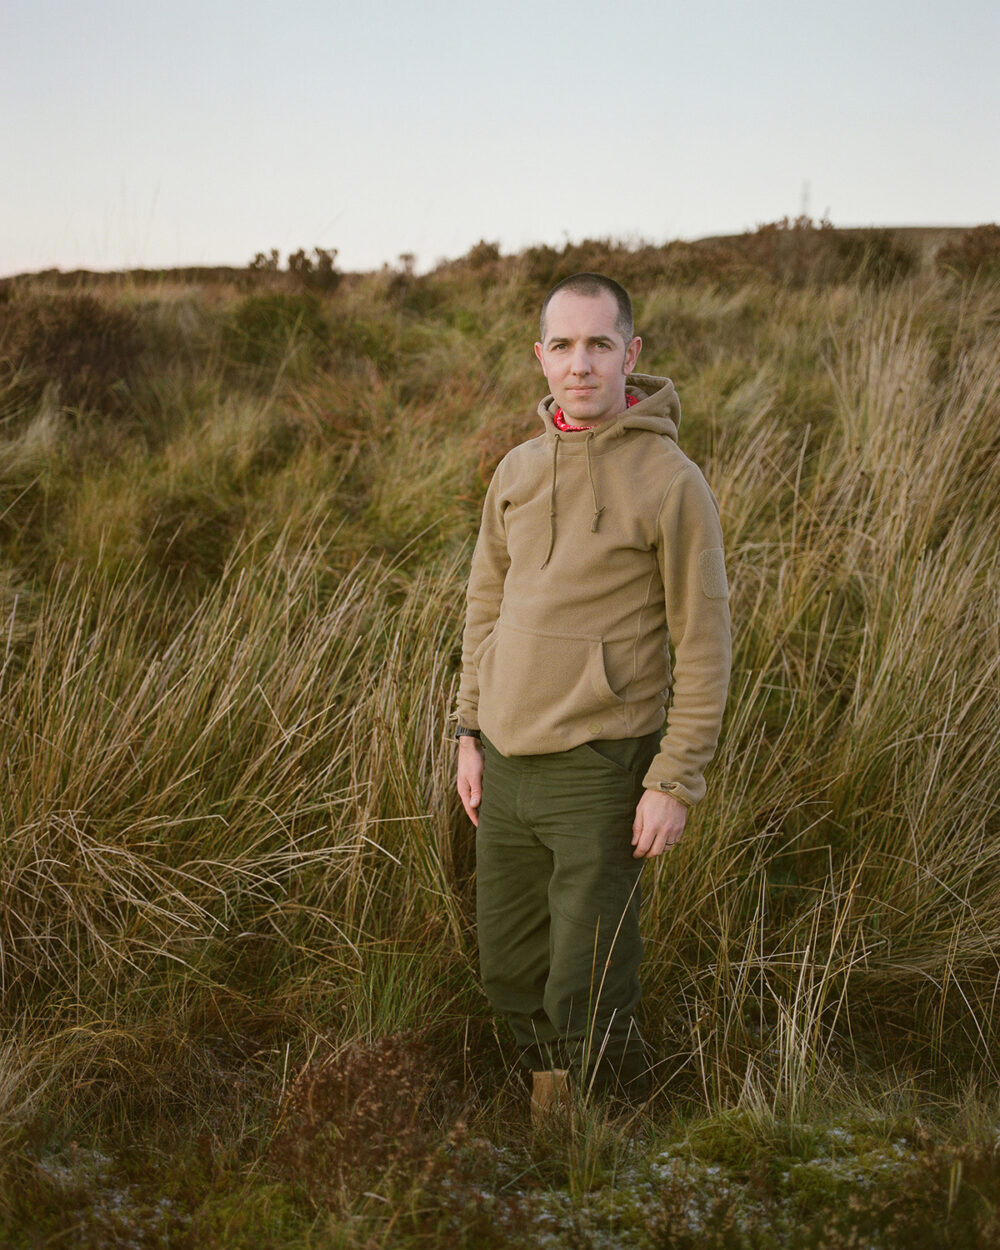 Paul, RSPB warden, from the series 'The Flows' © Sophie Gerrard 2019